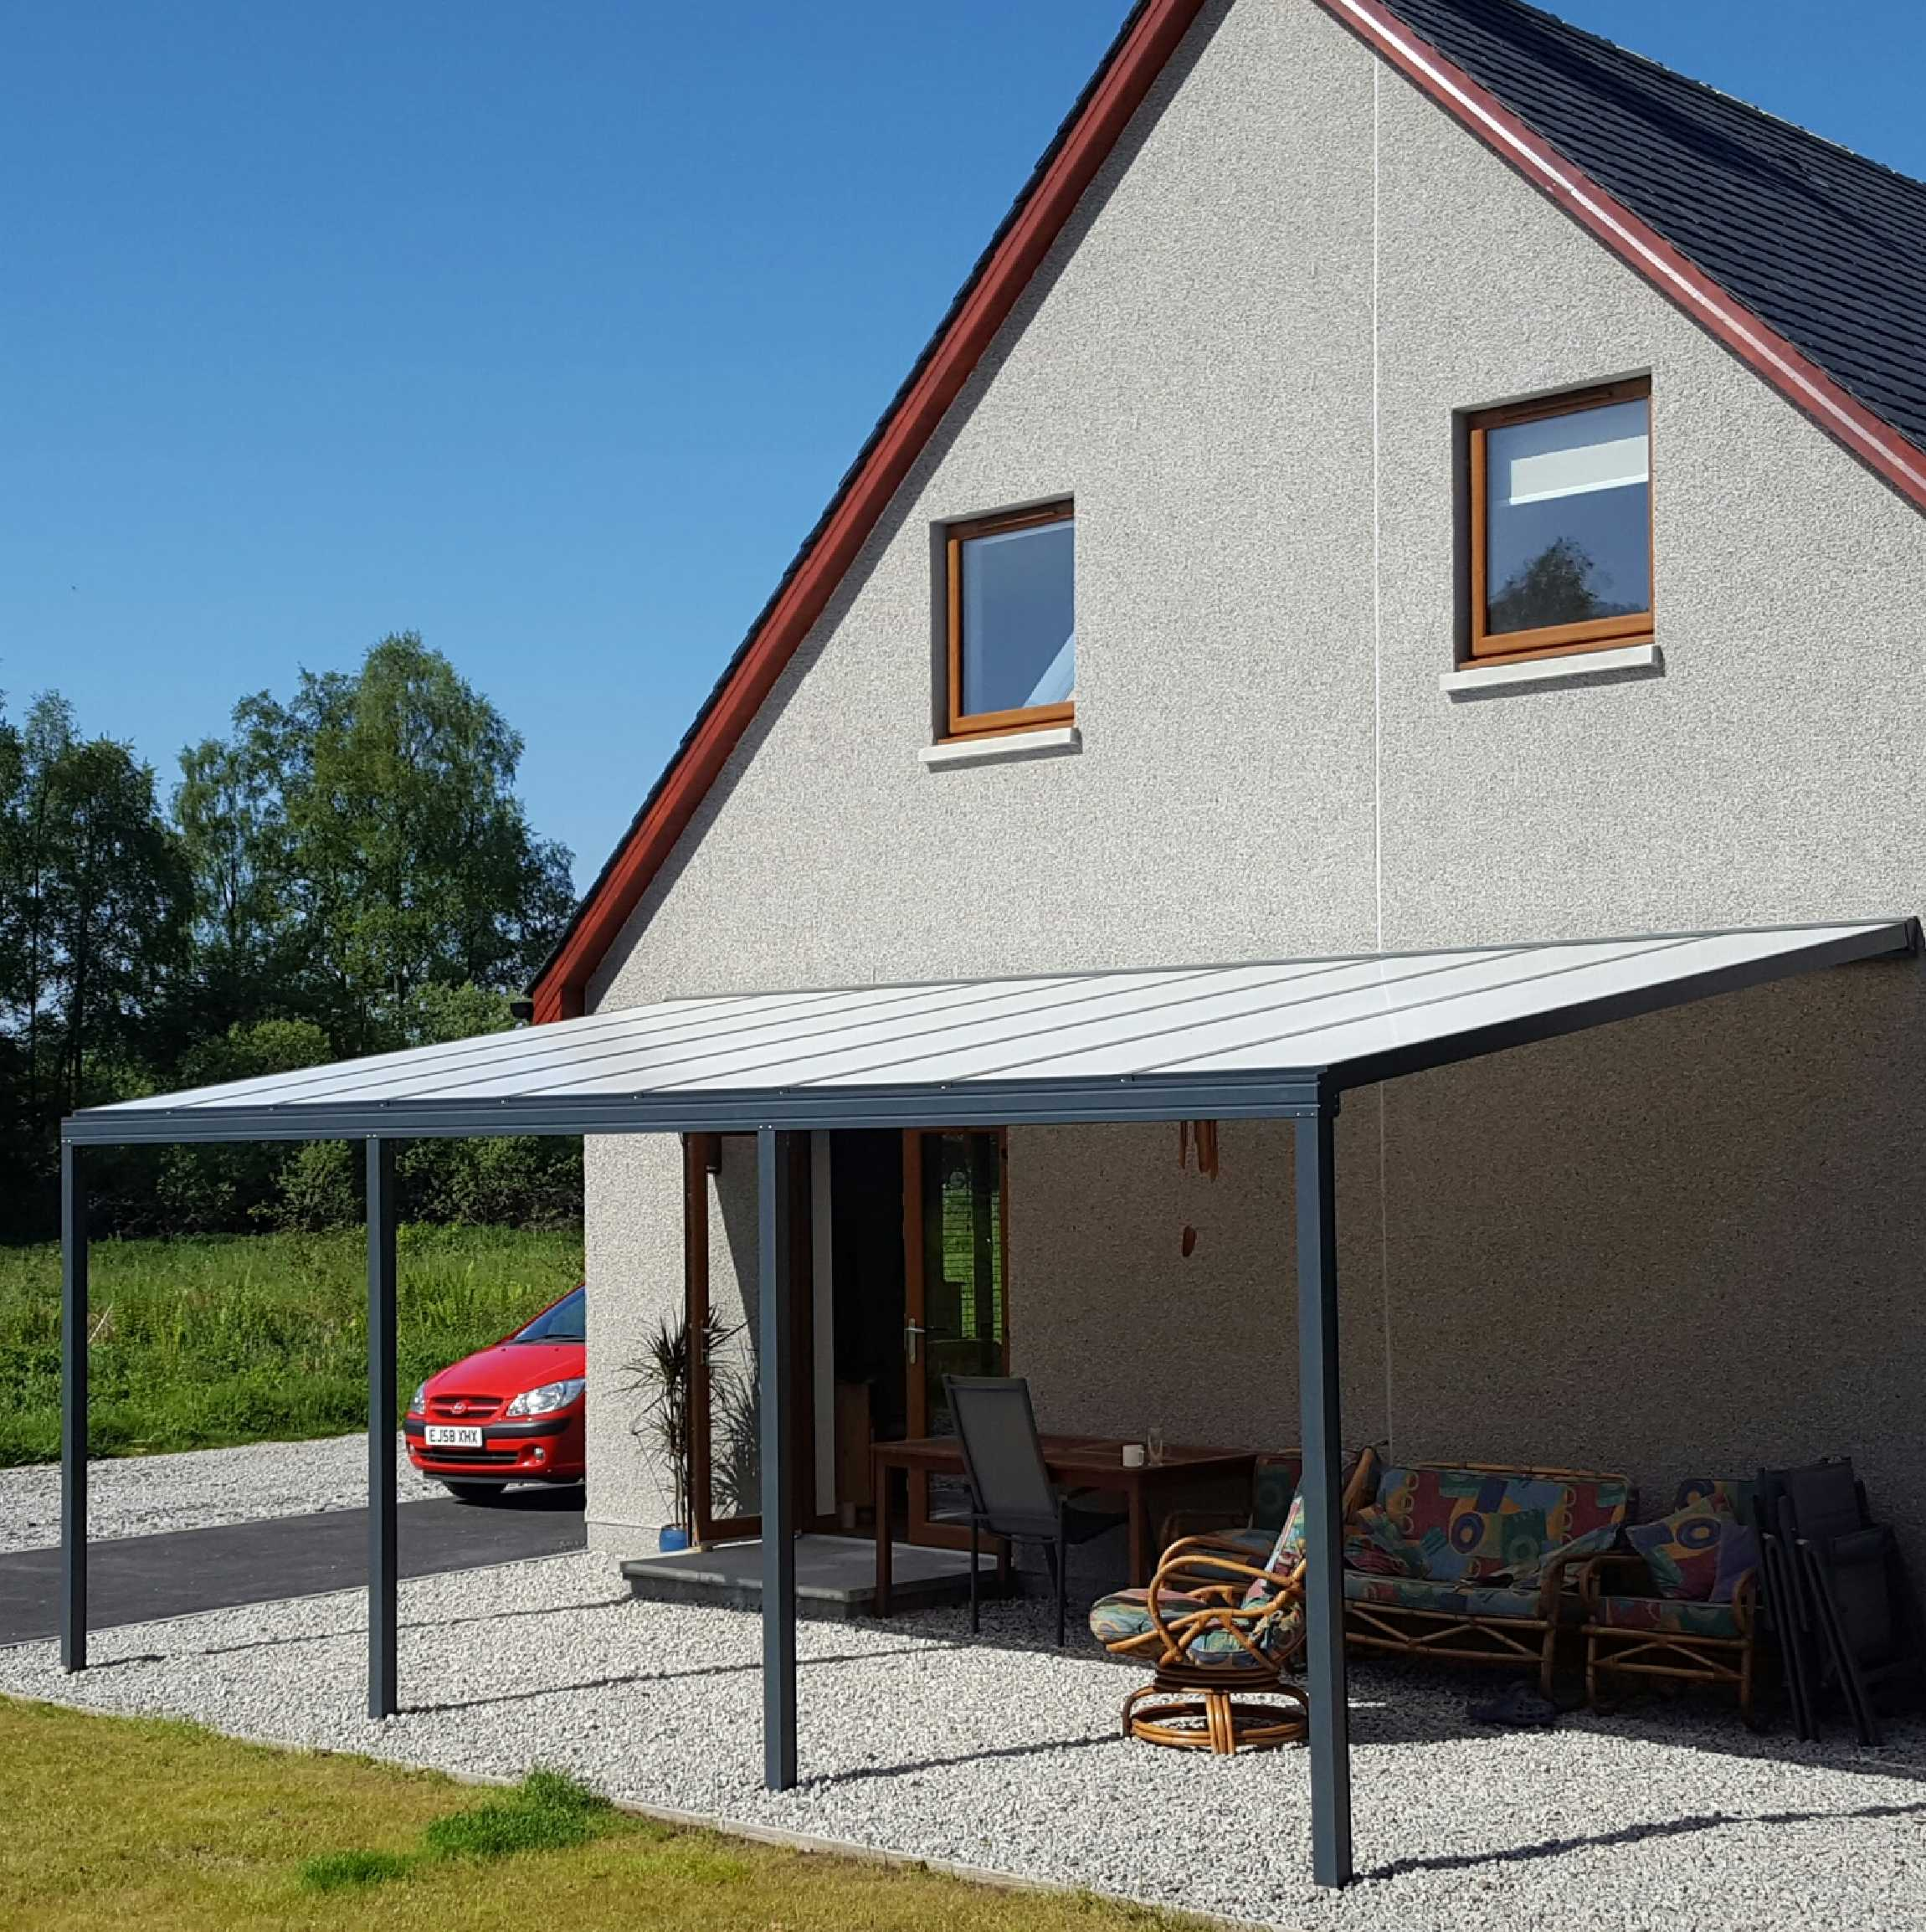 Great selection of Omega Smart Lean-To Canopy, Anthracite Grey, 16mm Polycarbonate Glazing - 4.2m (W) x 3.0m (P), (3) Supporting Posts